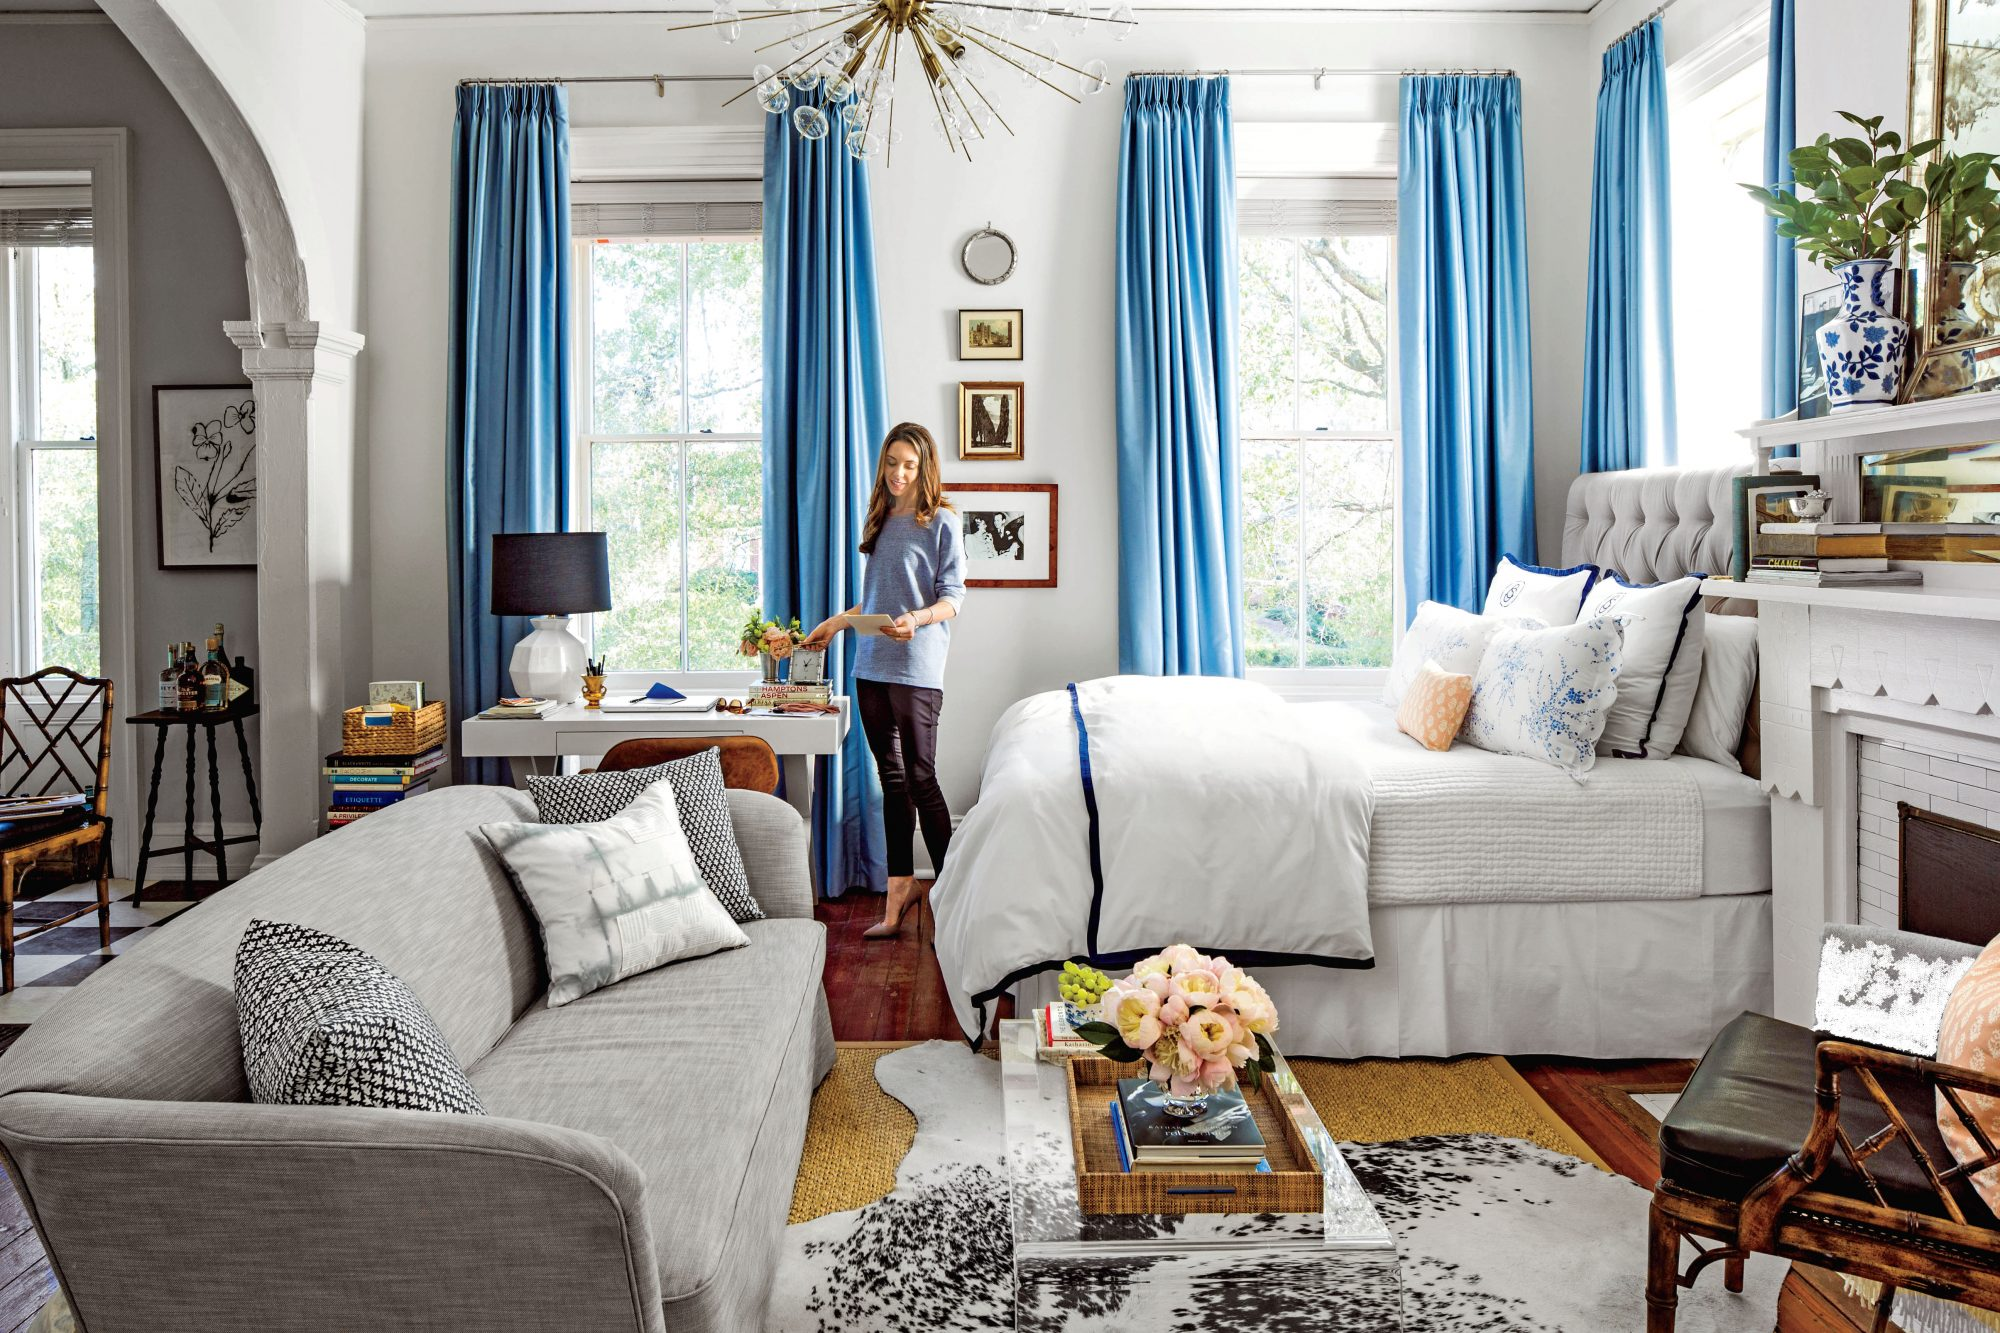 Double Rugs in Studio Apartment & 50 Best Small Space Decorating Tricks We Learned in 2016 - Southern ...